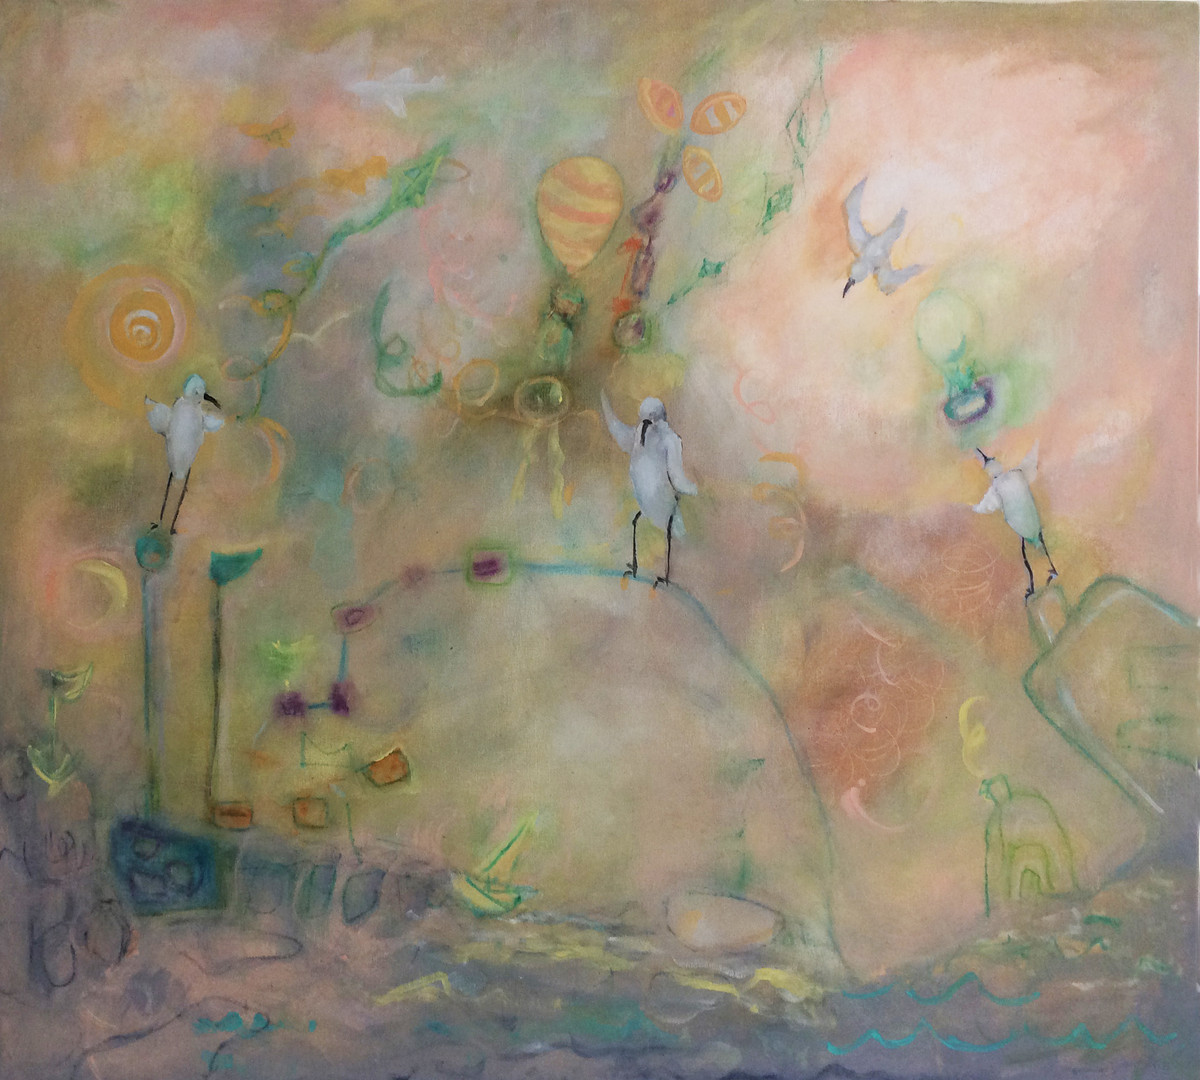 """Good Day's Travel by Janet Strayer, 36""""x36"""" acrylic on canvas"""